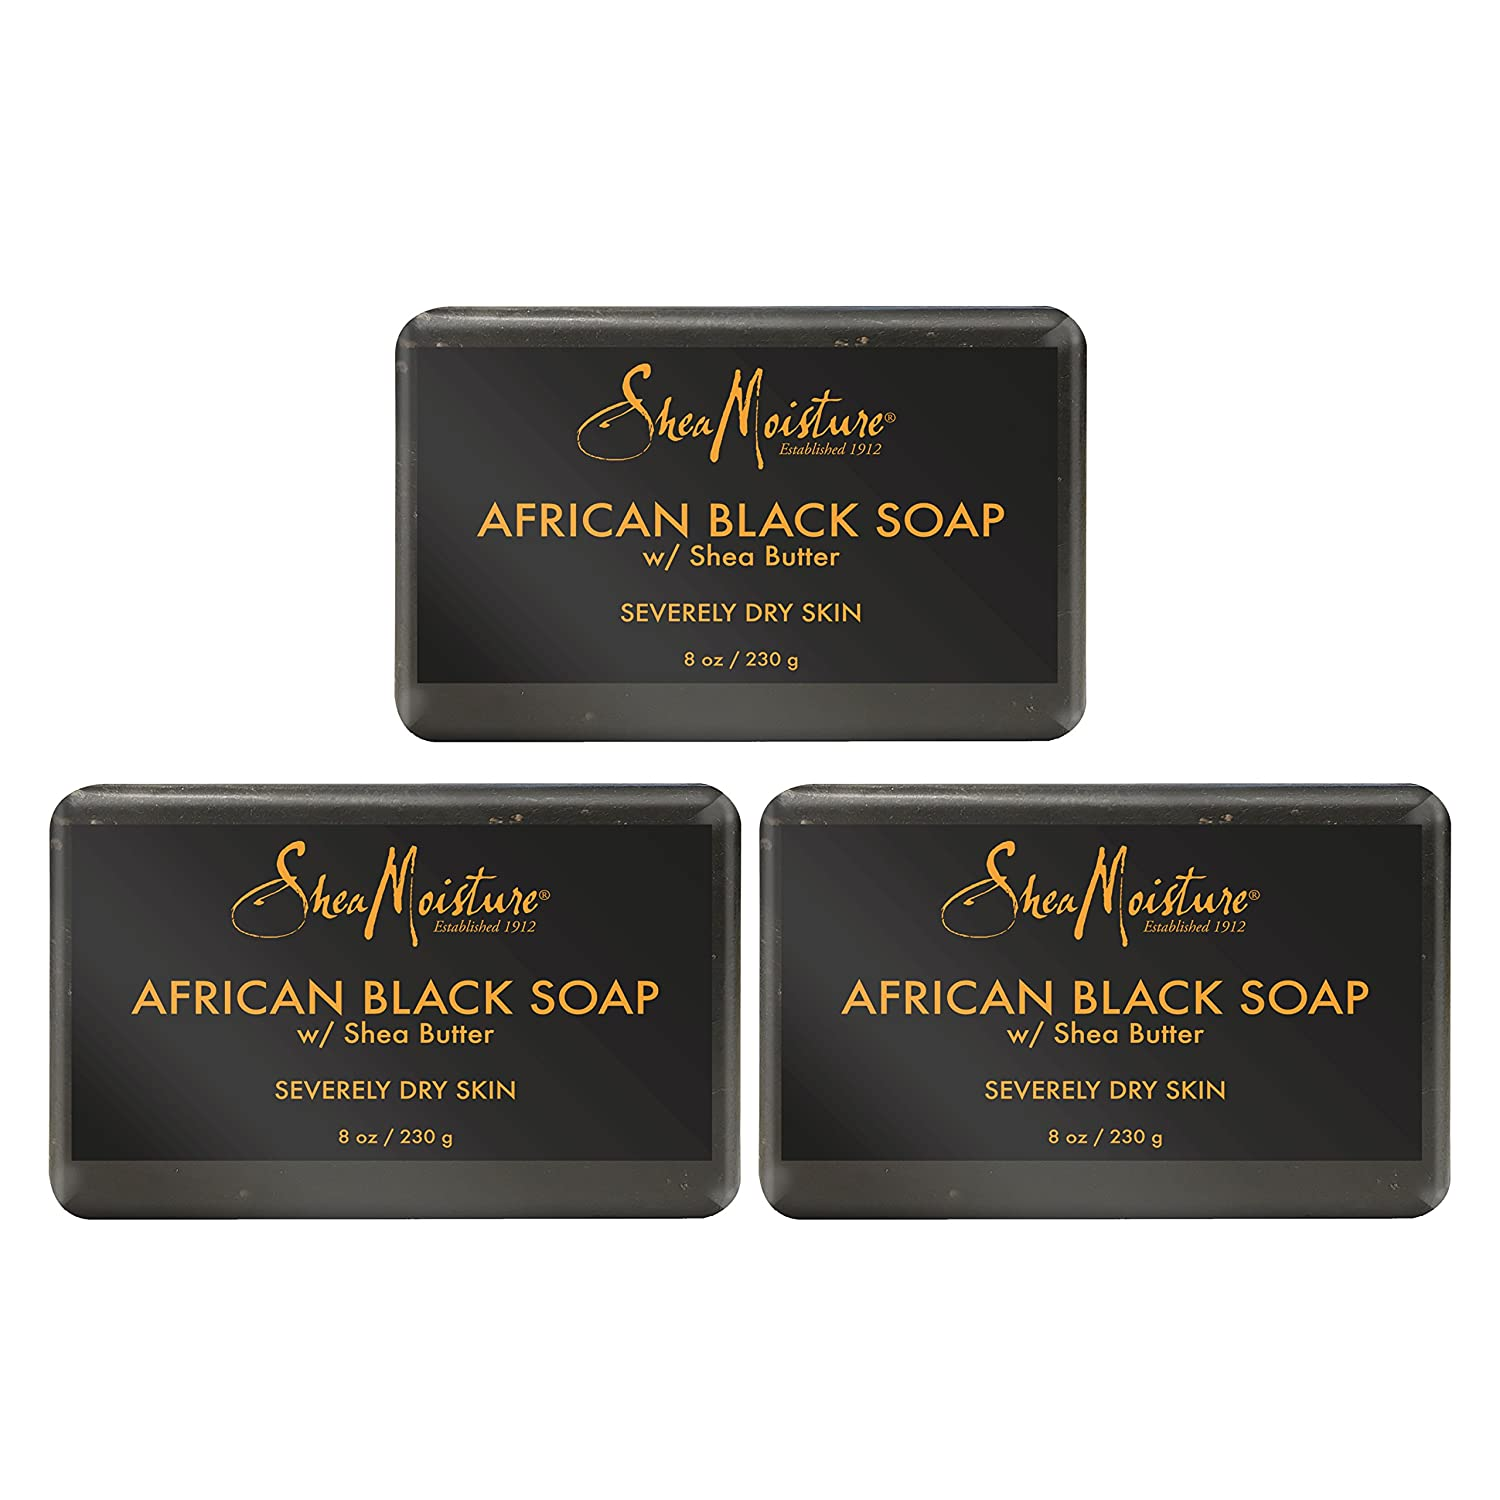 Shea Moisture African Black Soap with Burro di Karitè 230 G GT WORLD OF BEAUTY GmbH U-BB-2692